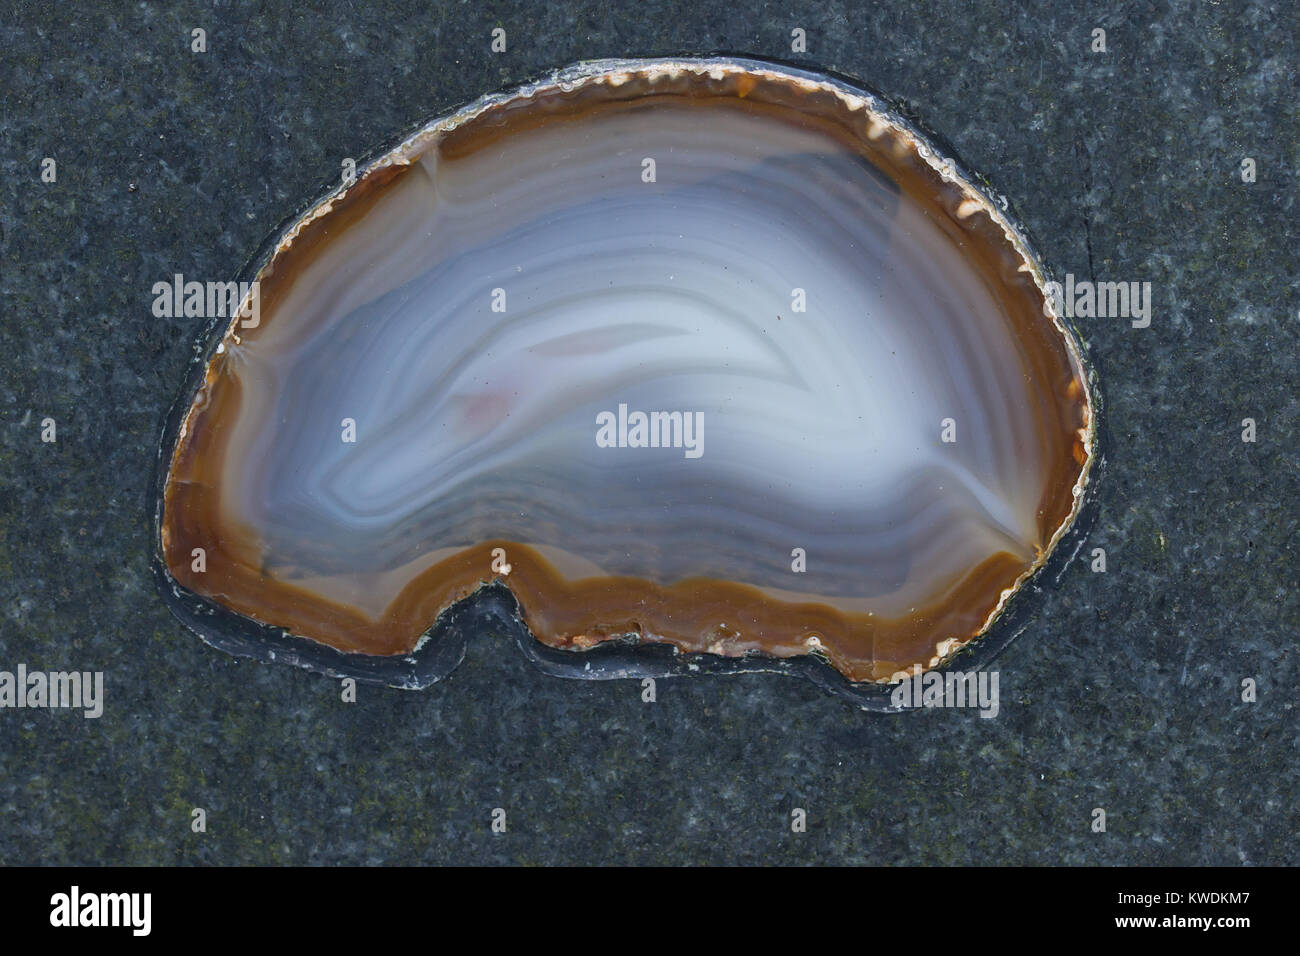 refined agate mineral inbeded in to  stone - Stock Image